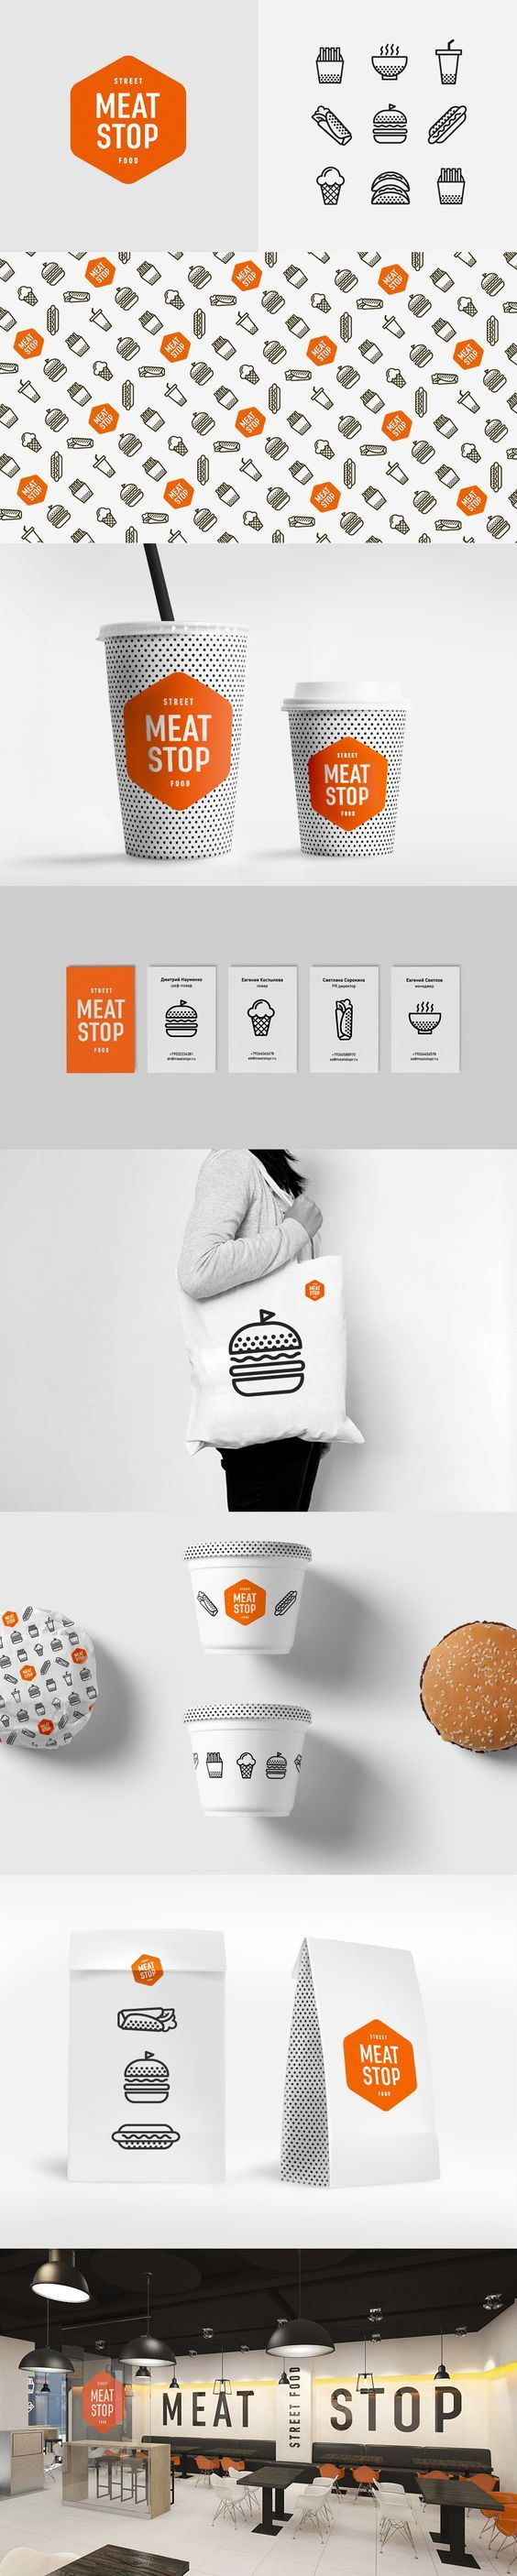 (53) Moscow (Москва) … | Pinterest / Branding / Ideas / Inspiration / Brand / Design / Food / Restaurant / MEat Shop / Hamburger / Line Art / Accent Color / Orange / Bold / Fun / Modern